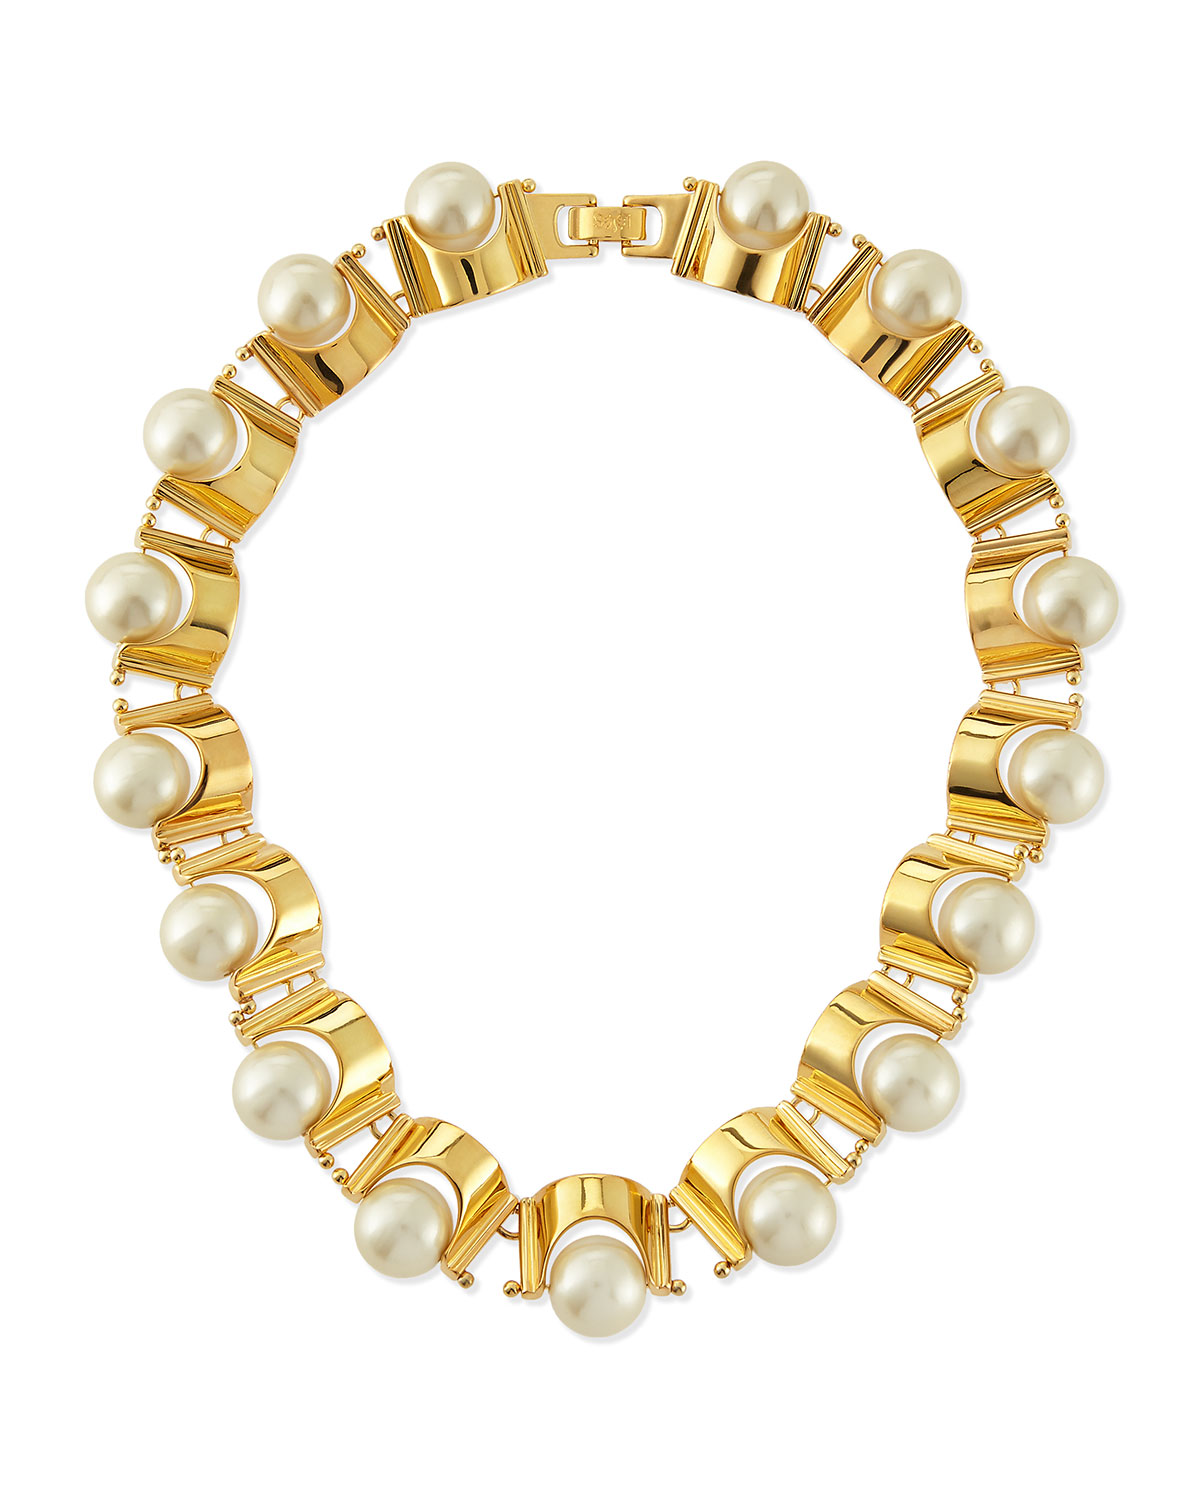 Simulated Pearl Groove Necklace - Lele Sadoughi